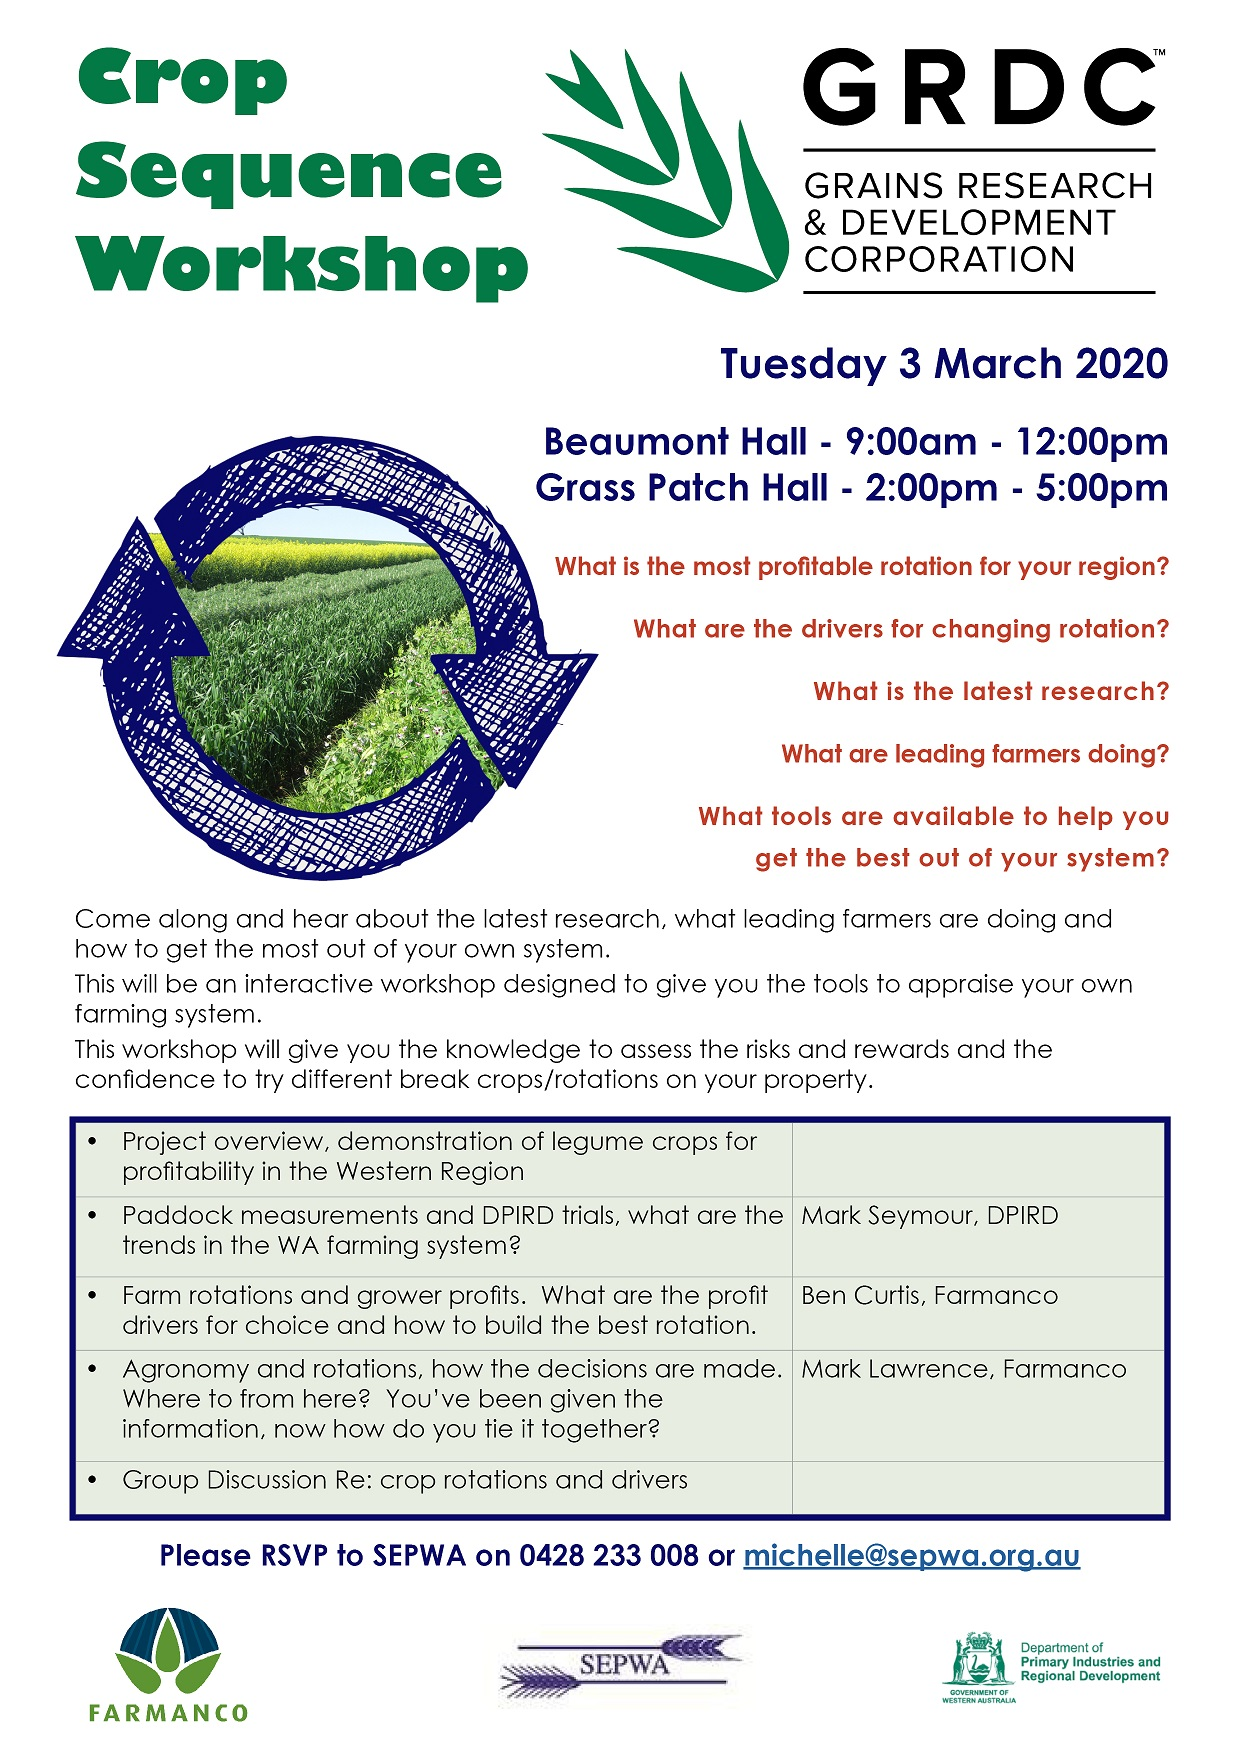 Crop Sequence Workshops 3 March 2020 Beaumont Grass Patch